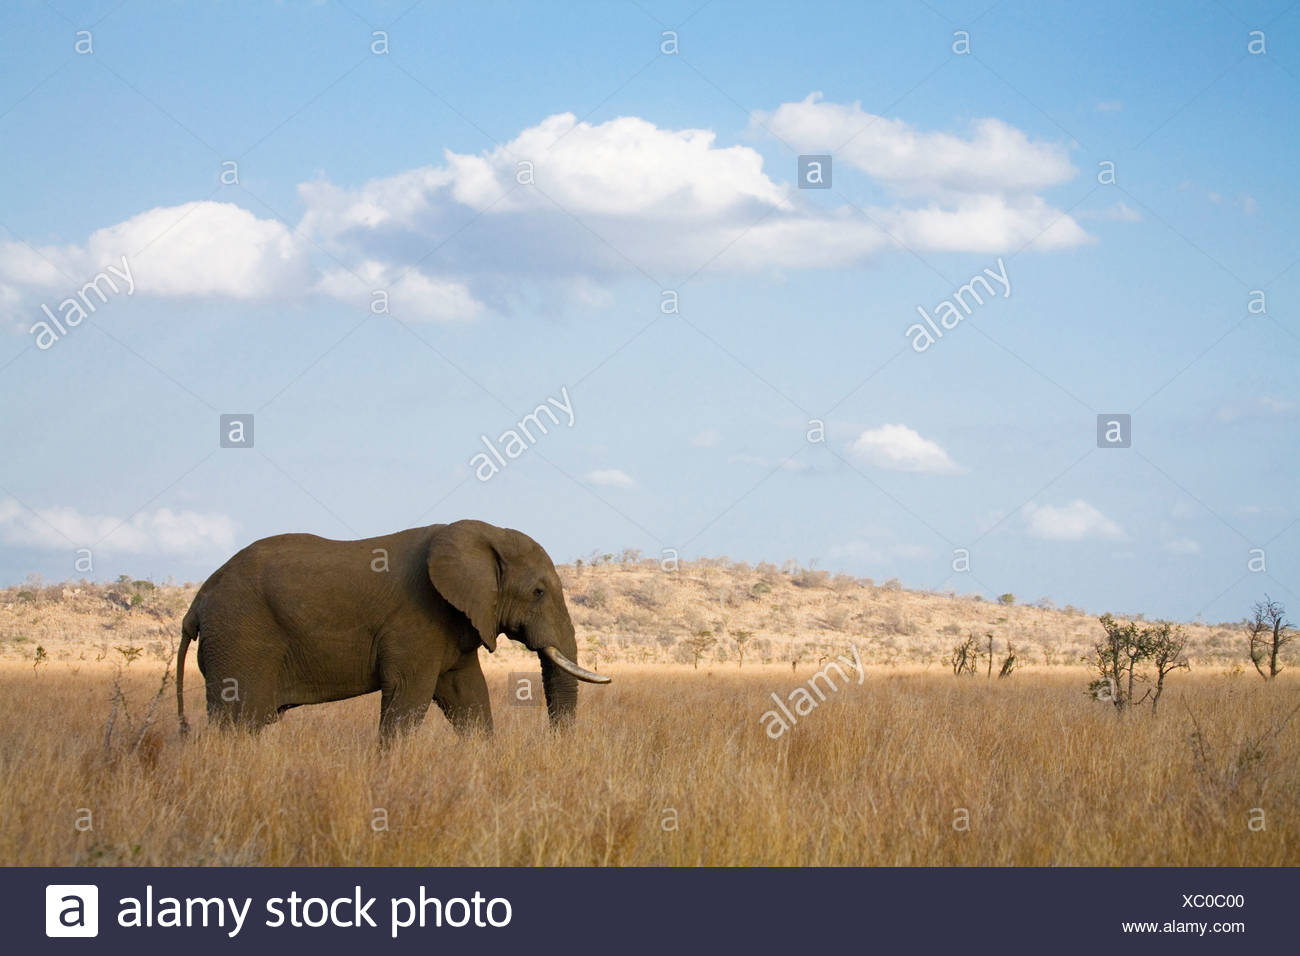 South Africa, Krüger National Park, Elefant - Stock Image